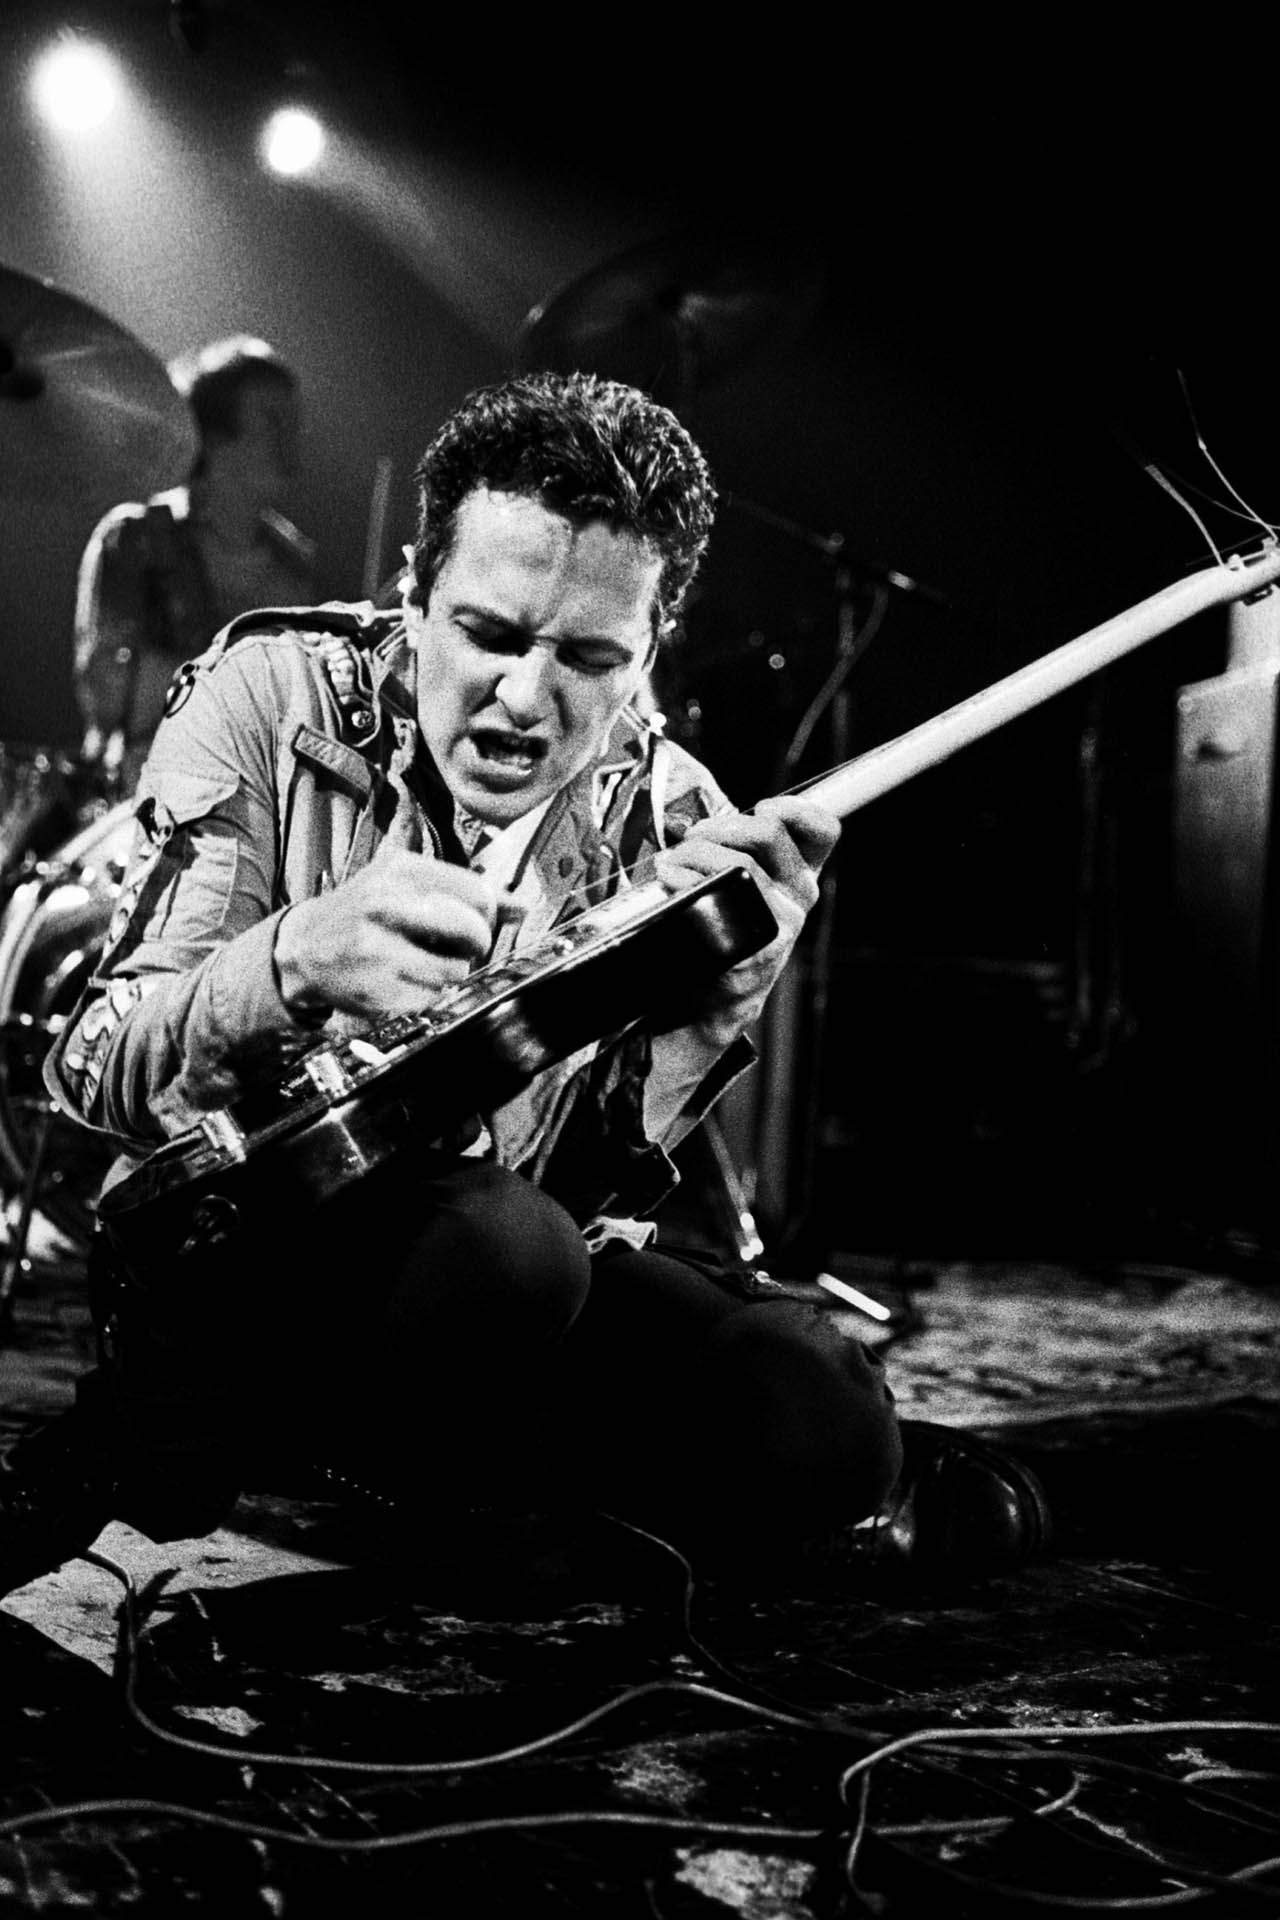 Joe Strummer live with The Clash